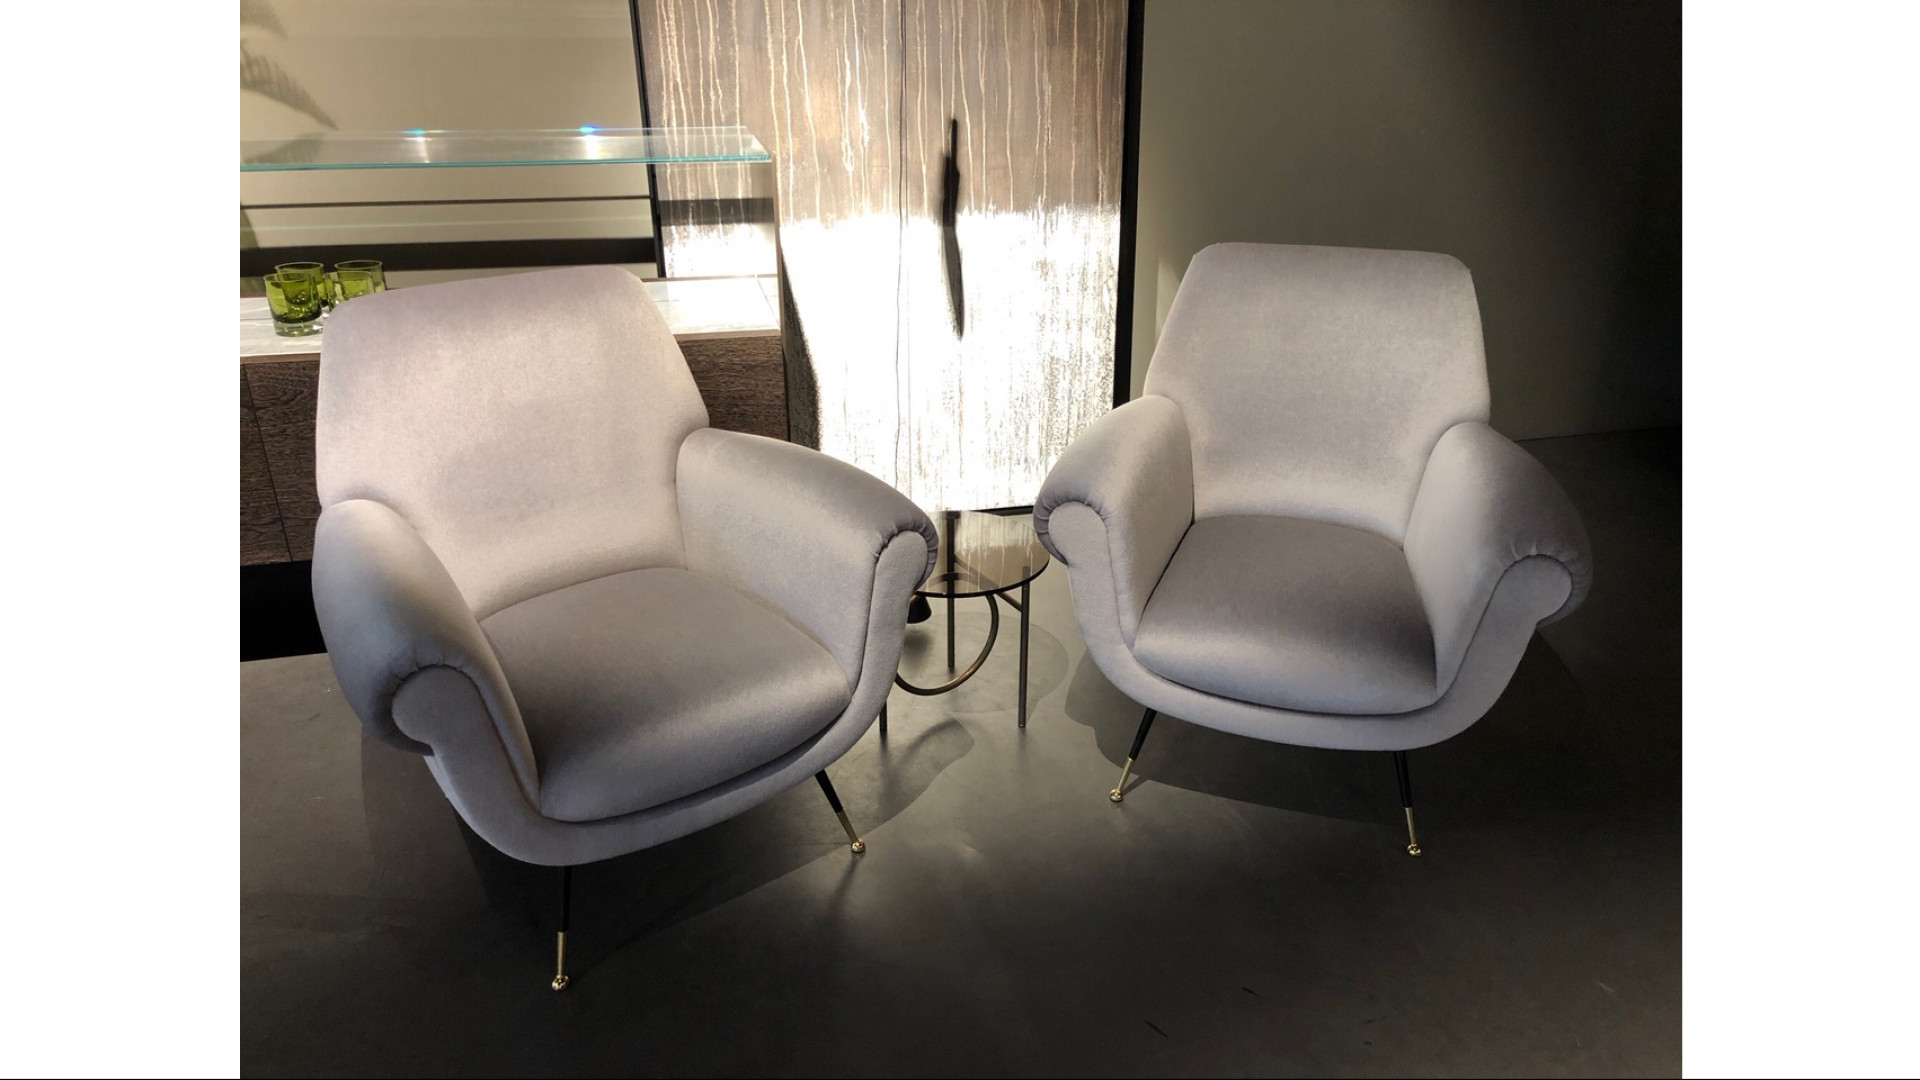 2x Albert armchair + Ring table